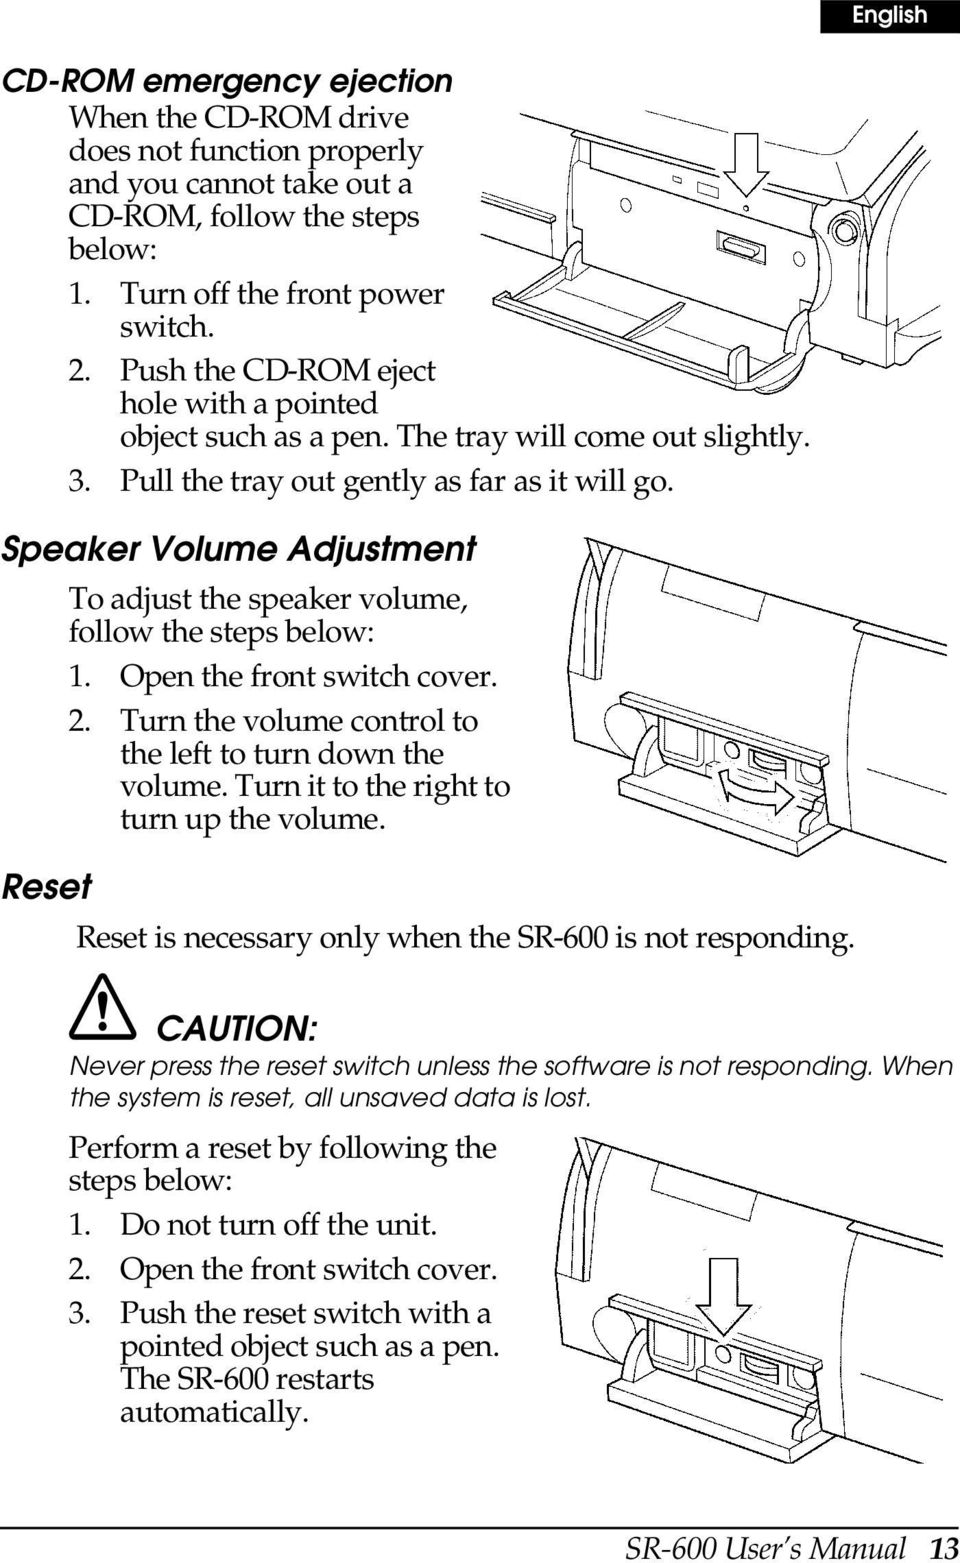 Speaker Volume Adjustment To adjust the speaker volume, follow the steps below: 1. Open the front switch cover. 2. Turn the volume control to the left to turn down the volume.